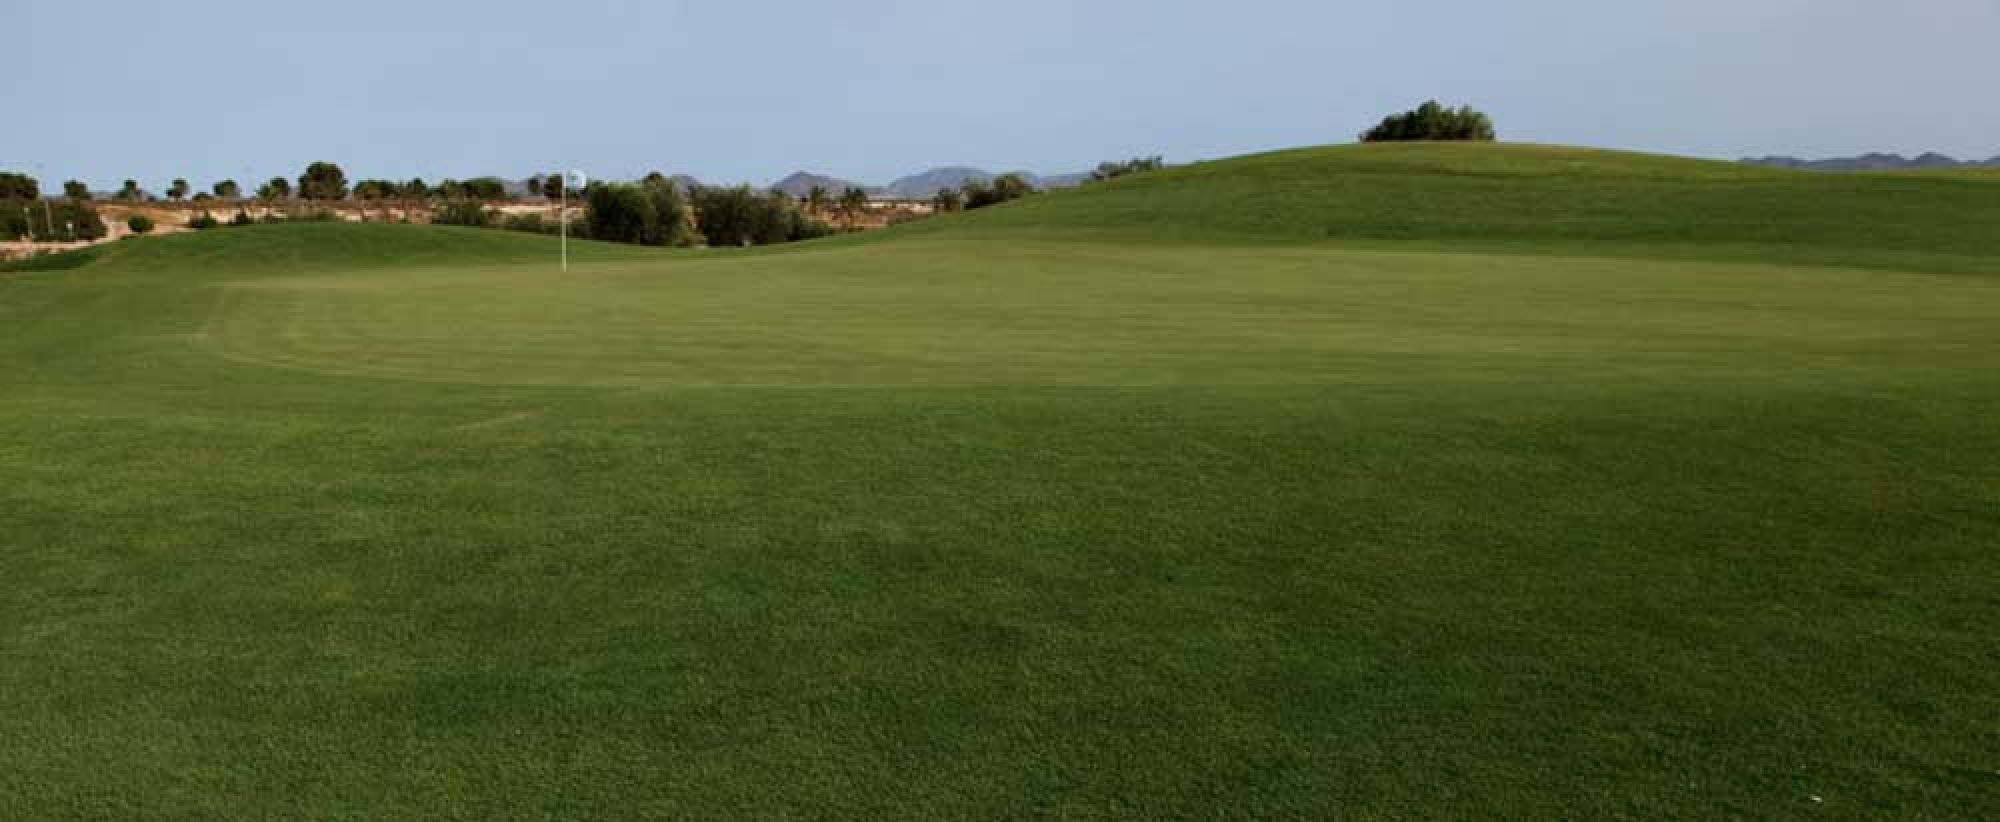 Hacienda del Alamo Golf Course includes some of the most desirable golf course near Costa Blanca